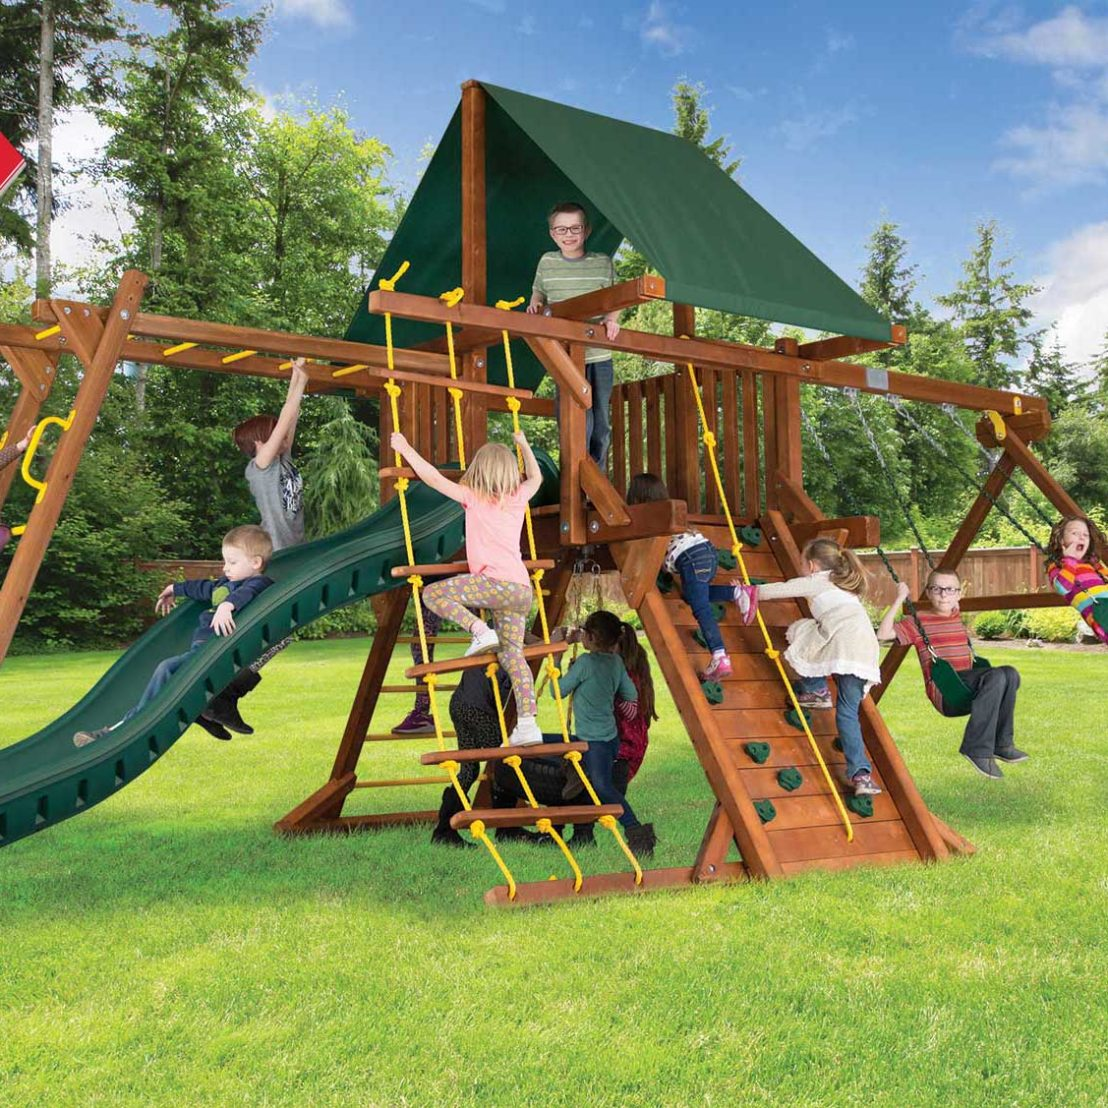 Sunshine Base Castle Pkg II with 4 by 4 Monkey Bars Wooden Swing Set